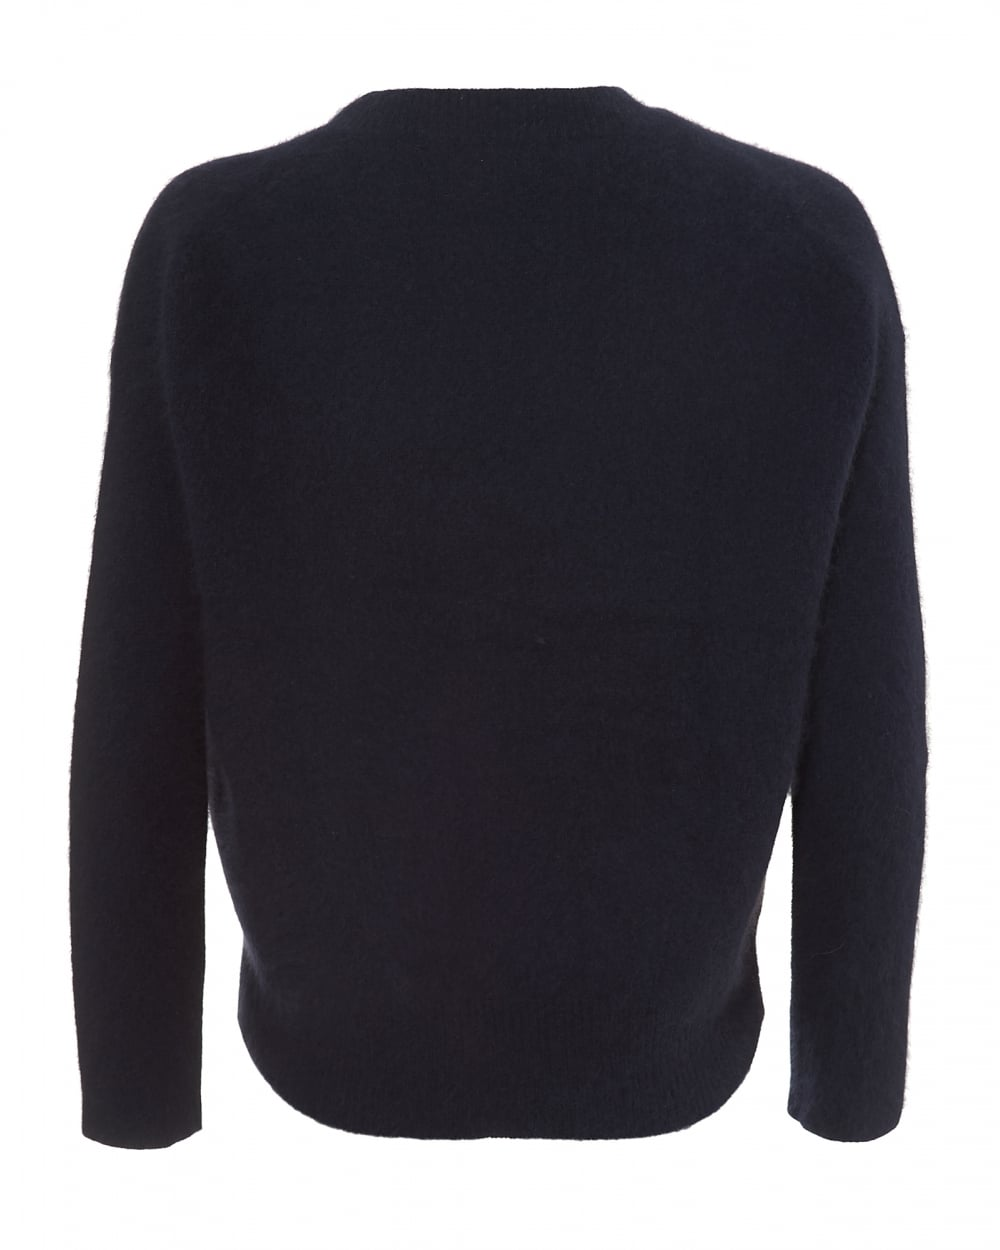 360 Cashmere Womens Alexa Jumper, Relaxed Fit Navy Blue Sweater